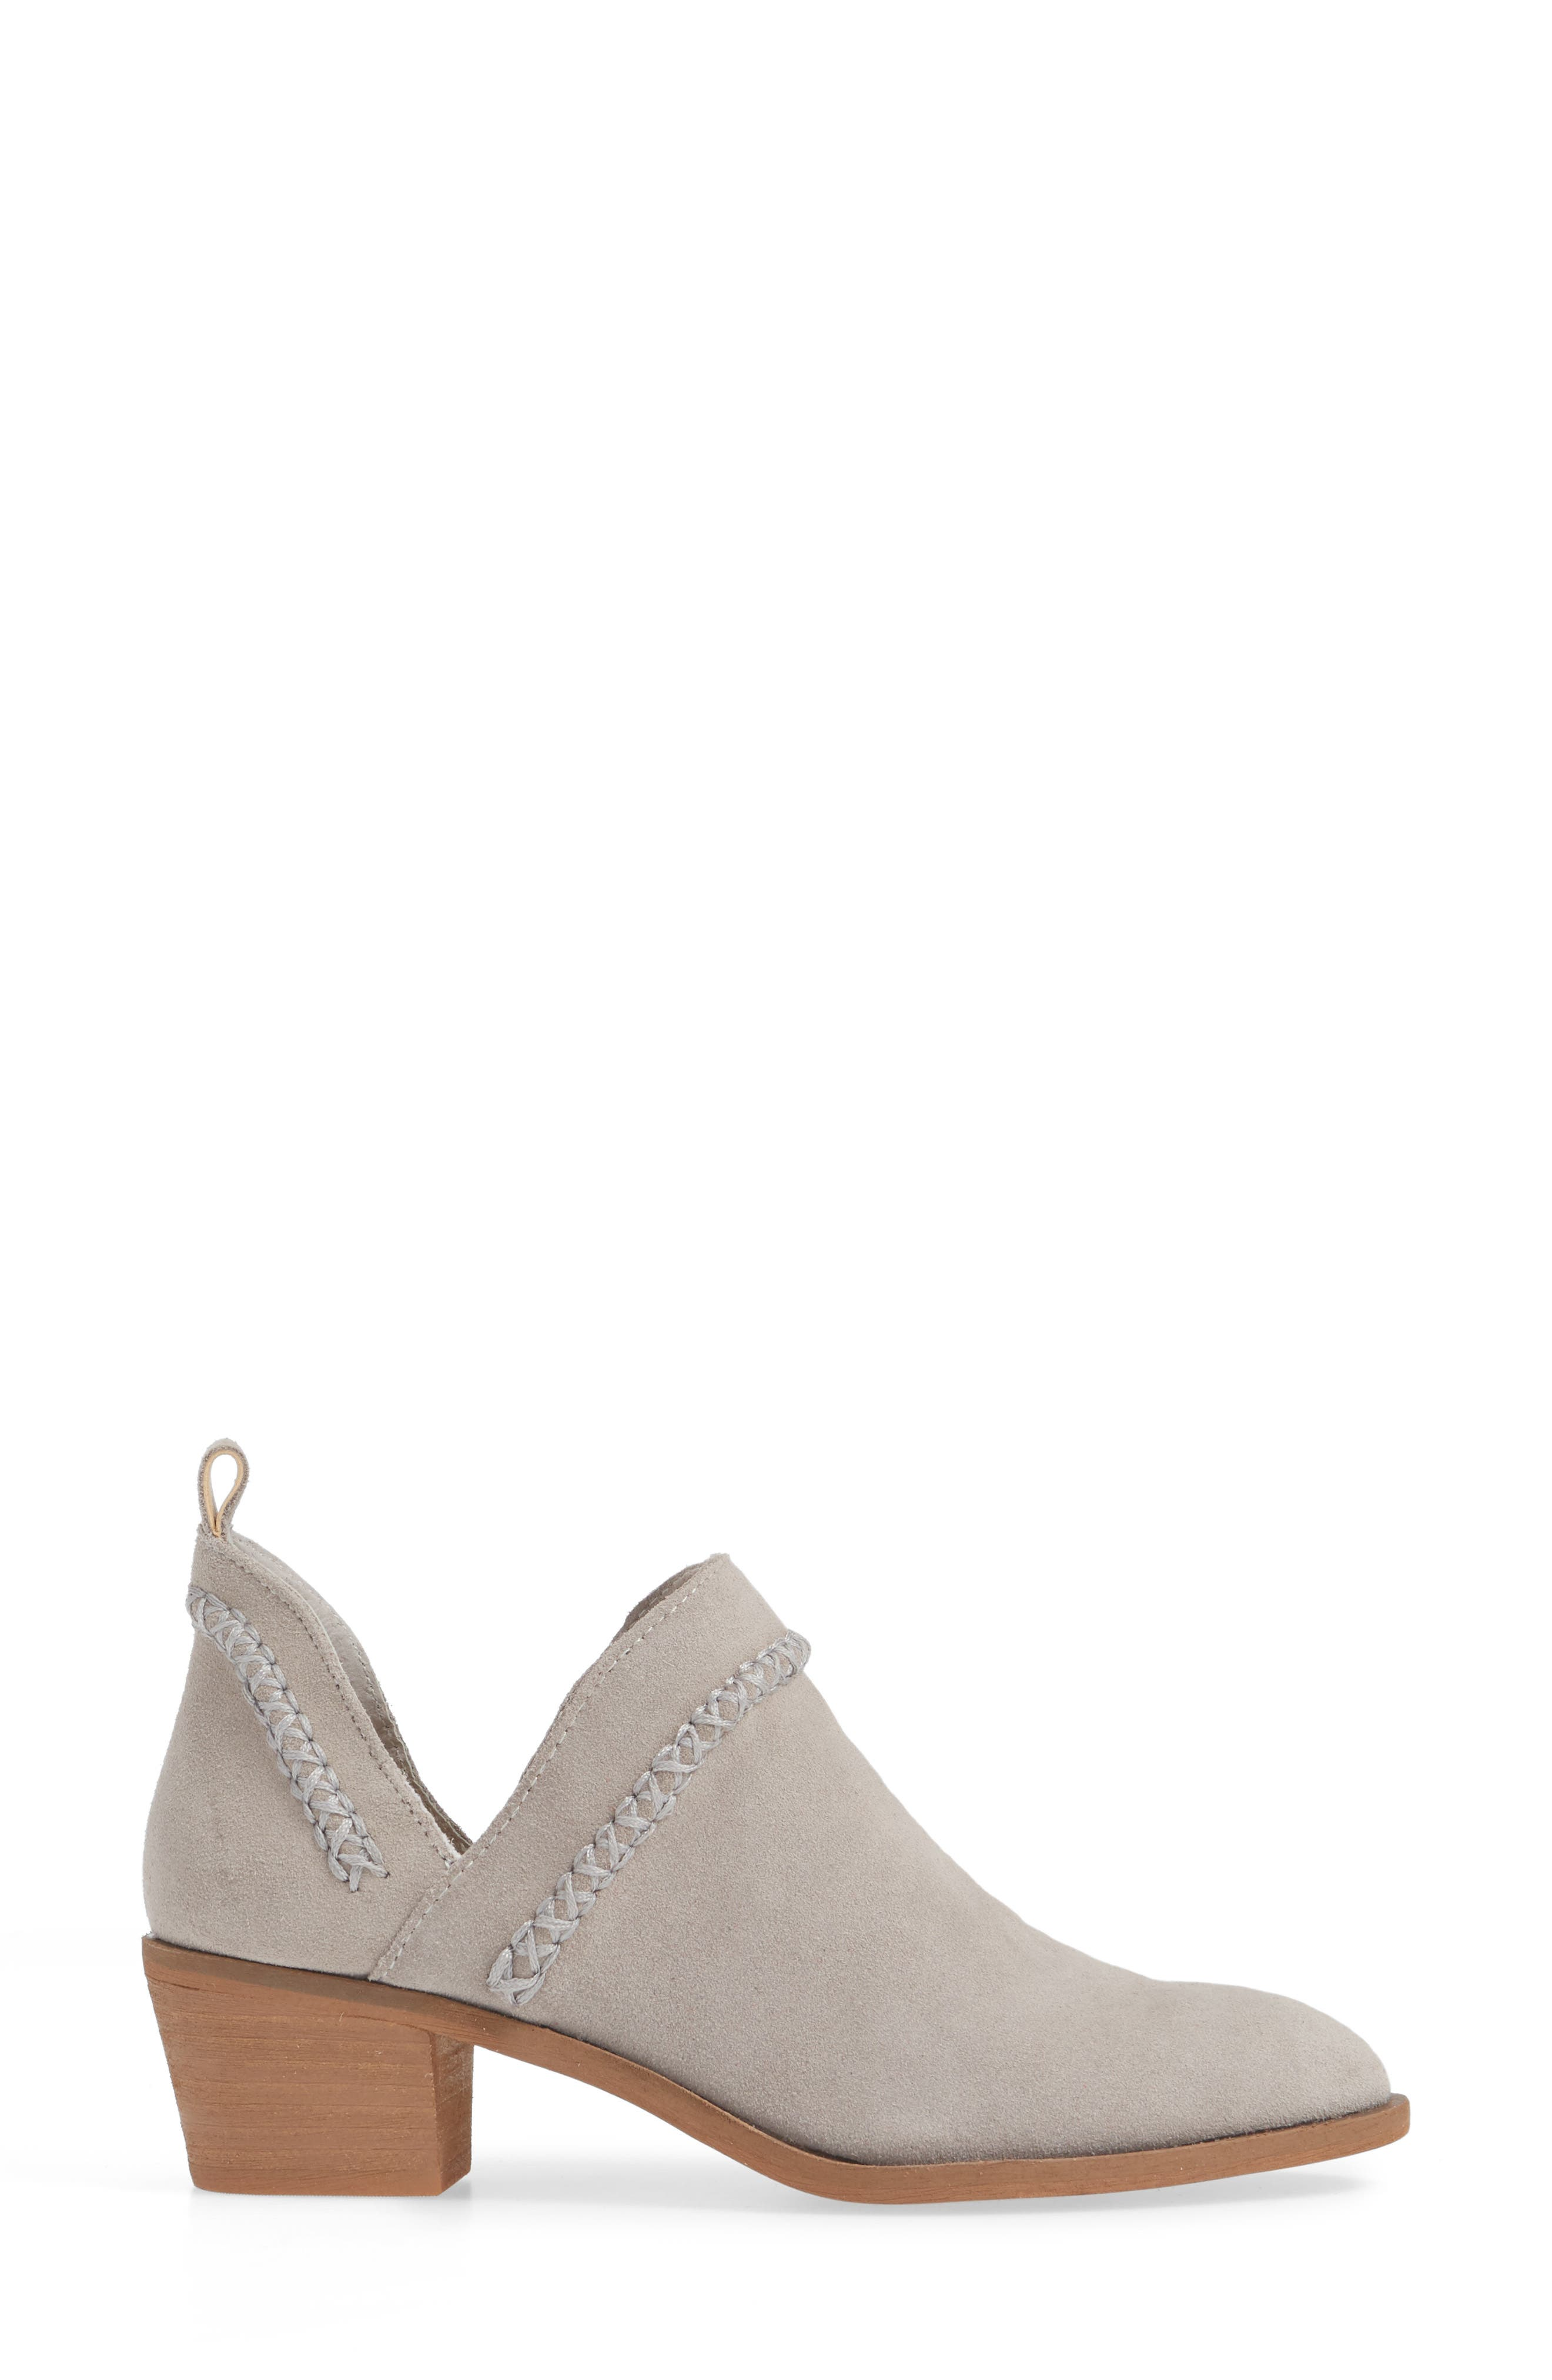 SOLE SOCIETY, Nikkie Bootie, Alternate thumbnail 3, color, SOFT GREY SUEDE